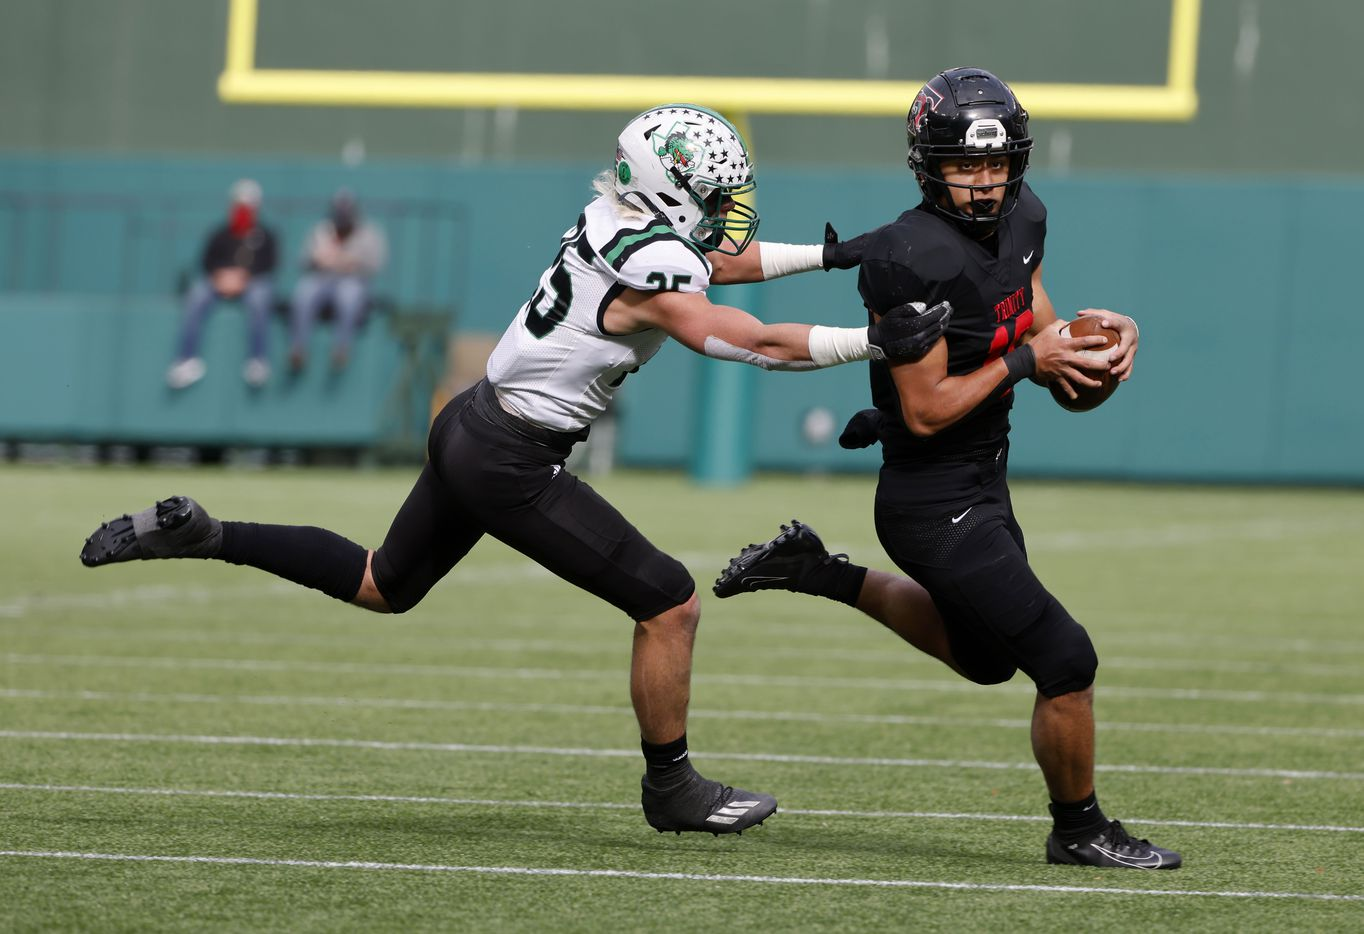 Southlake Carroll defender Barrett Baker (25) chases Euless Trinity receiver Carey Lawson (18) during the Class 6A Division I Region I high school football final, in Arlington, Texas, on Jan. 2, 2020. (Michael Ainsworth/Special Contributor)